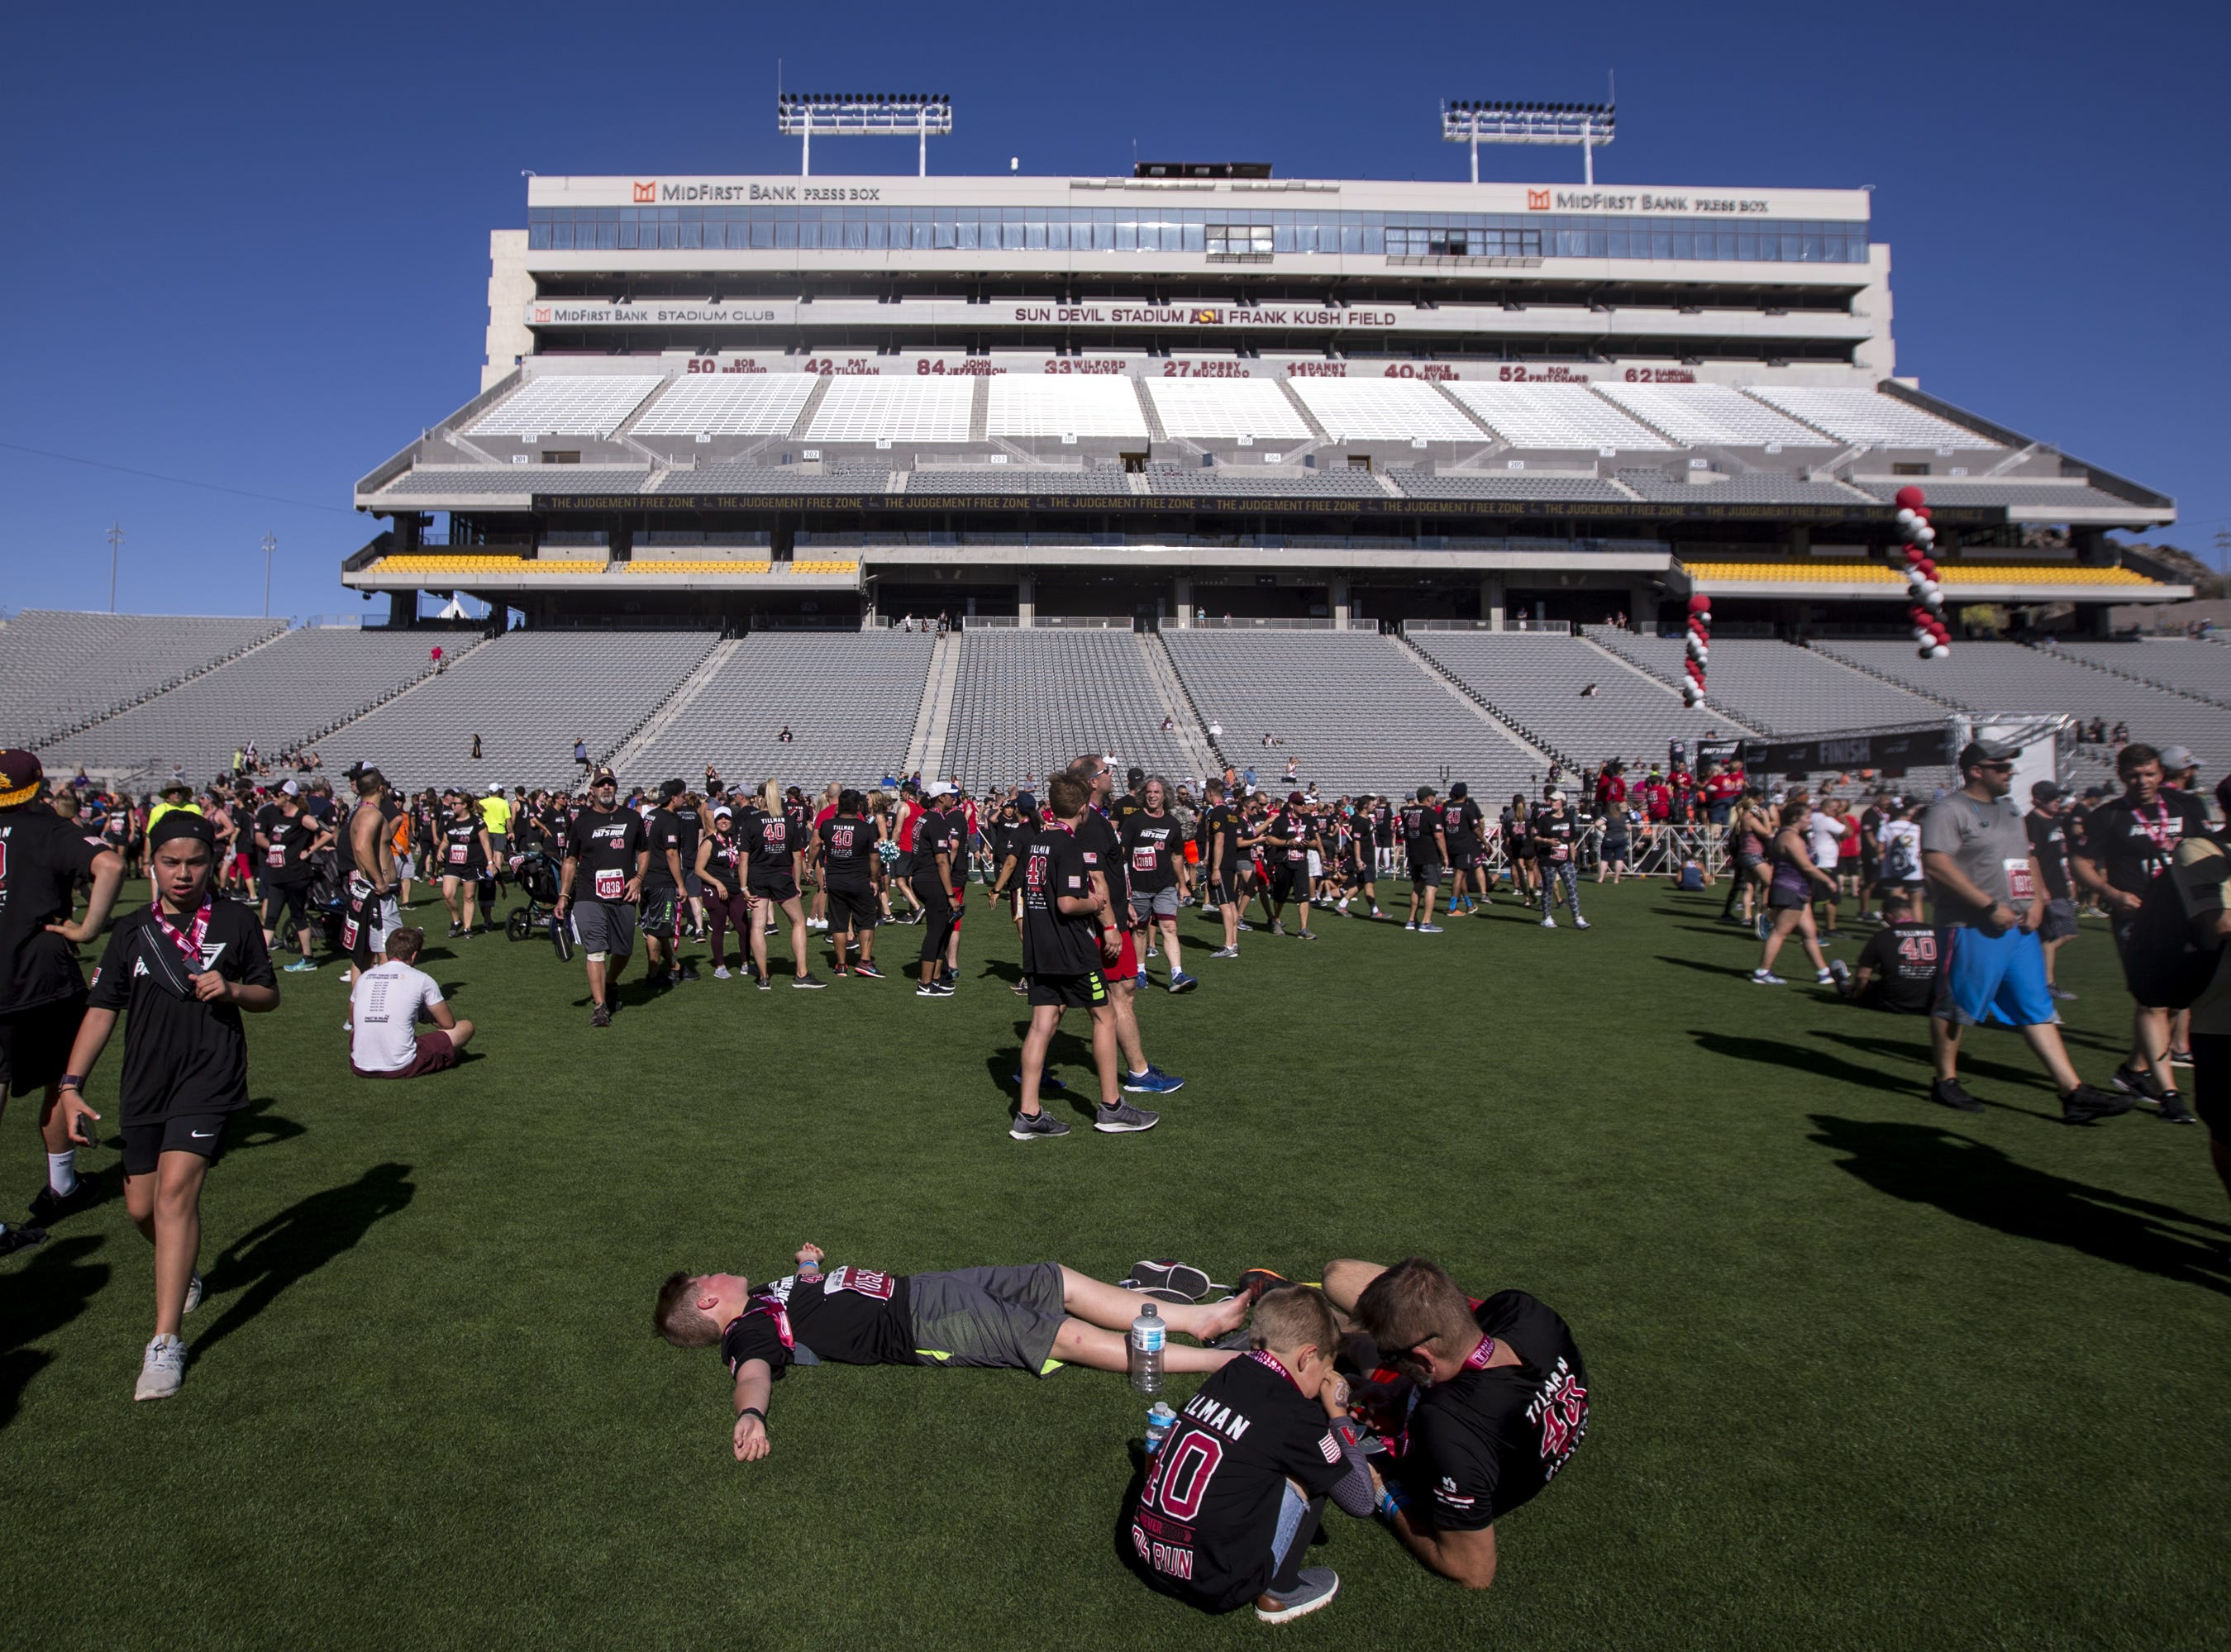 Participants rest on the field at Sun Devil Stadium after the 15th Annual Pat's Run on Saturday, April 27, 2019, in Tempe, Ariz.